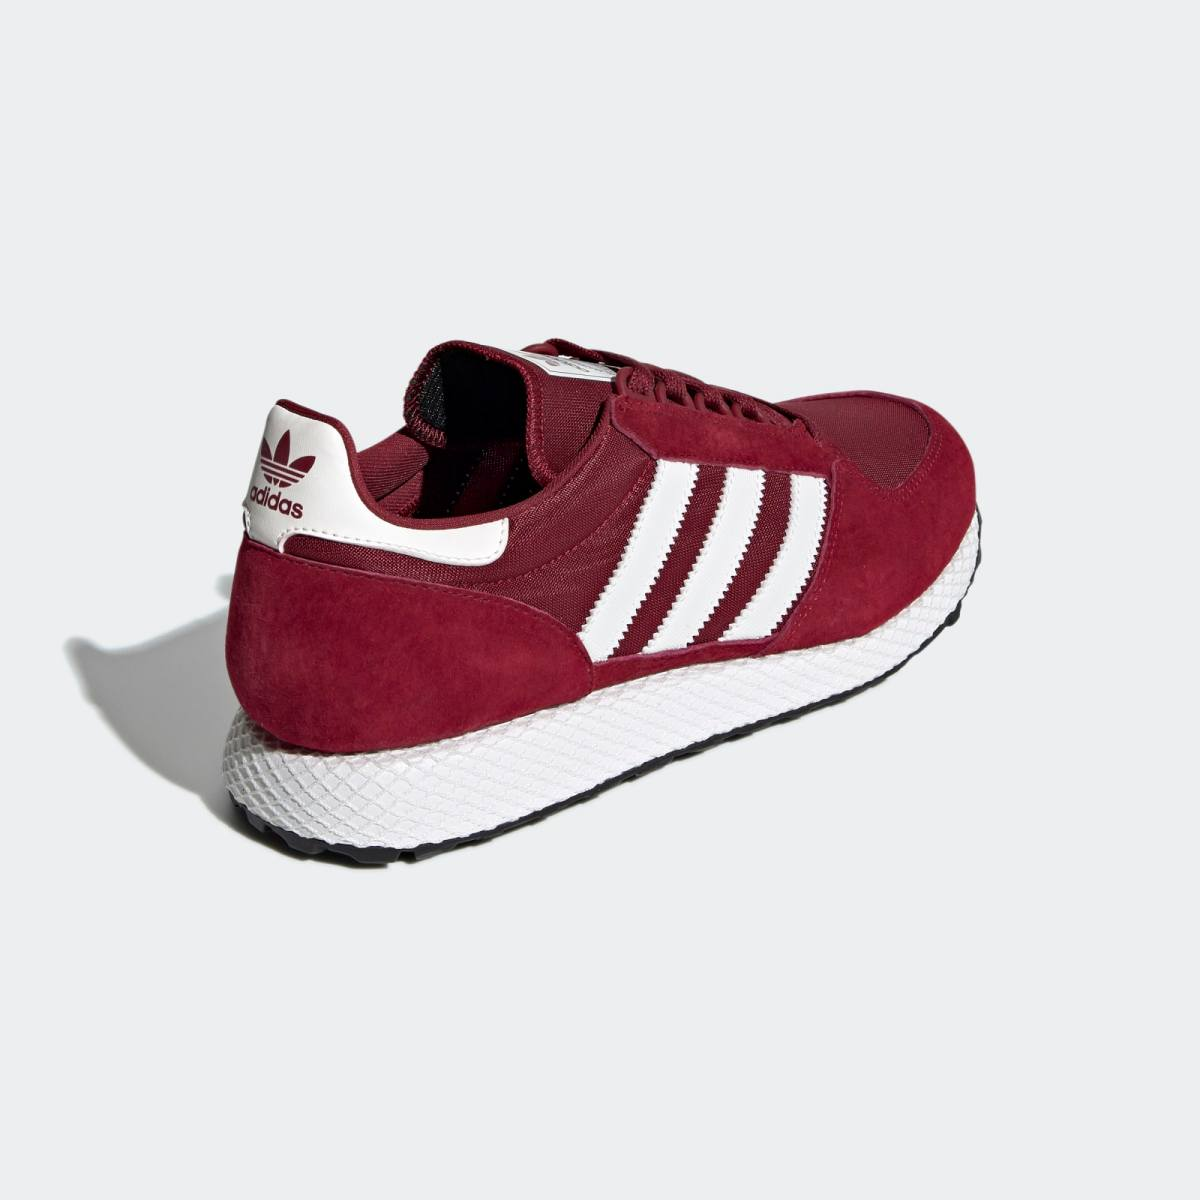 Forest_Grove_Shoes_Burgundy_CG5674_05_standard